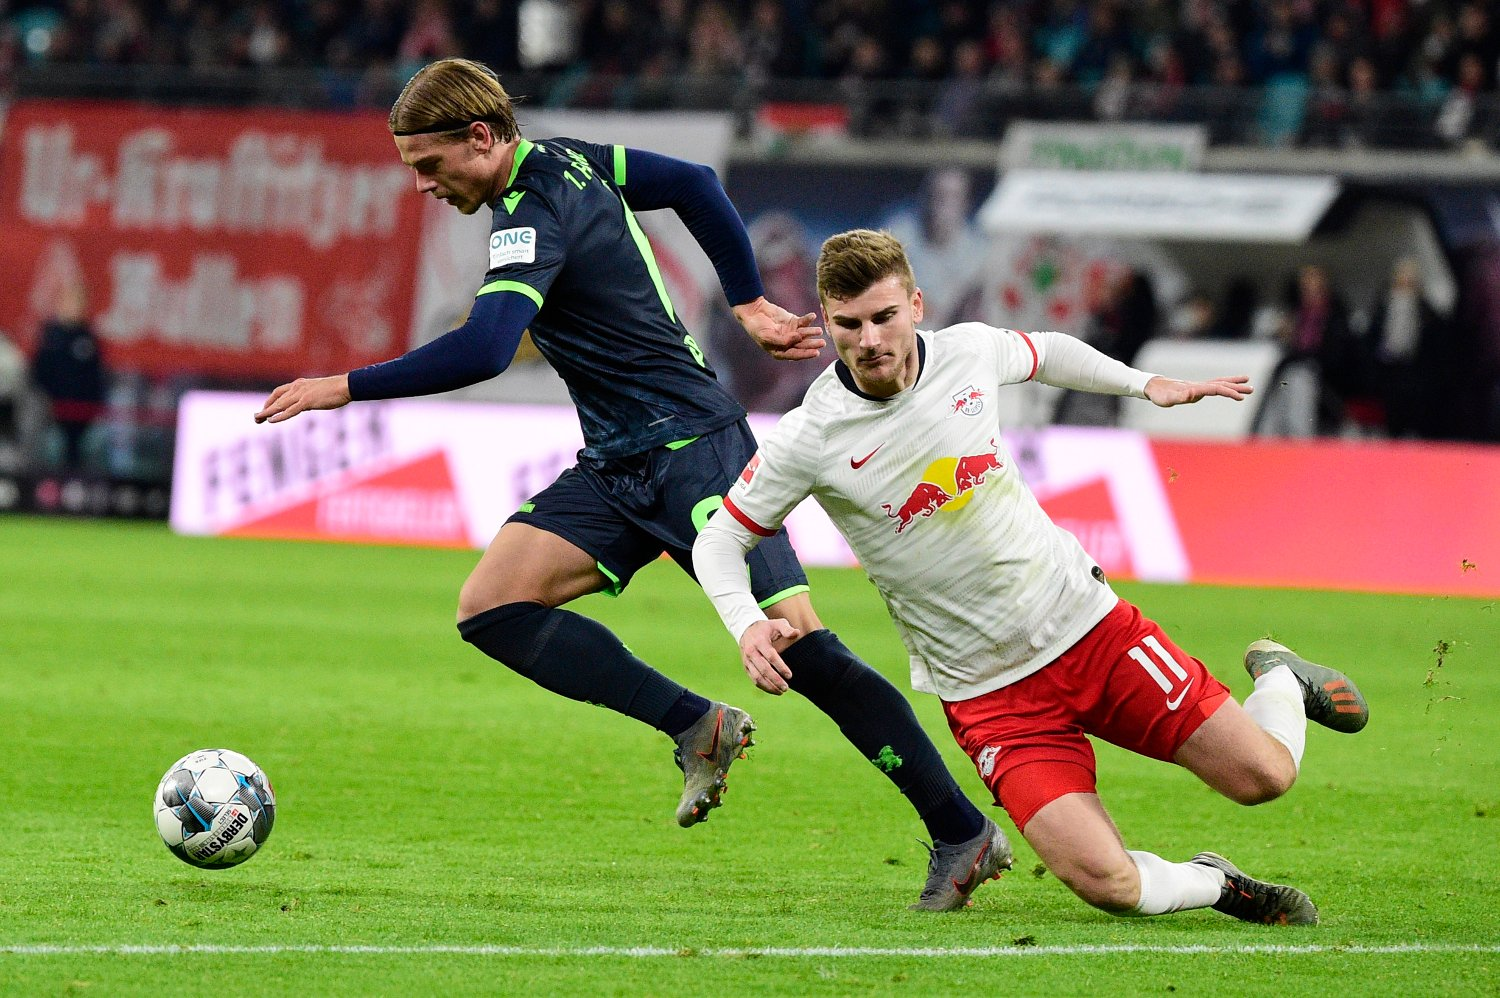 Leipzig's Timo Werner, right, and Union's Julian Ryerson vie for the ball during the German Bundesliga soccer match between RB Leipzig and Union Berlin in Leipzig, Germany, Saturday, Jan. 18, 2020.